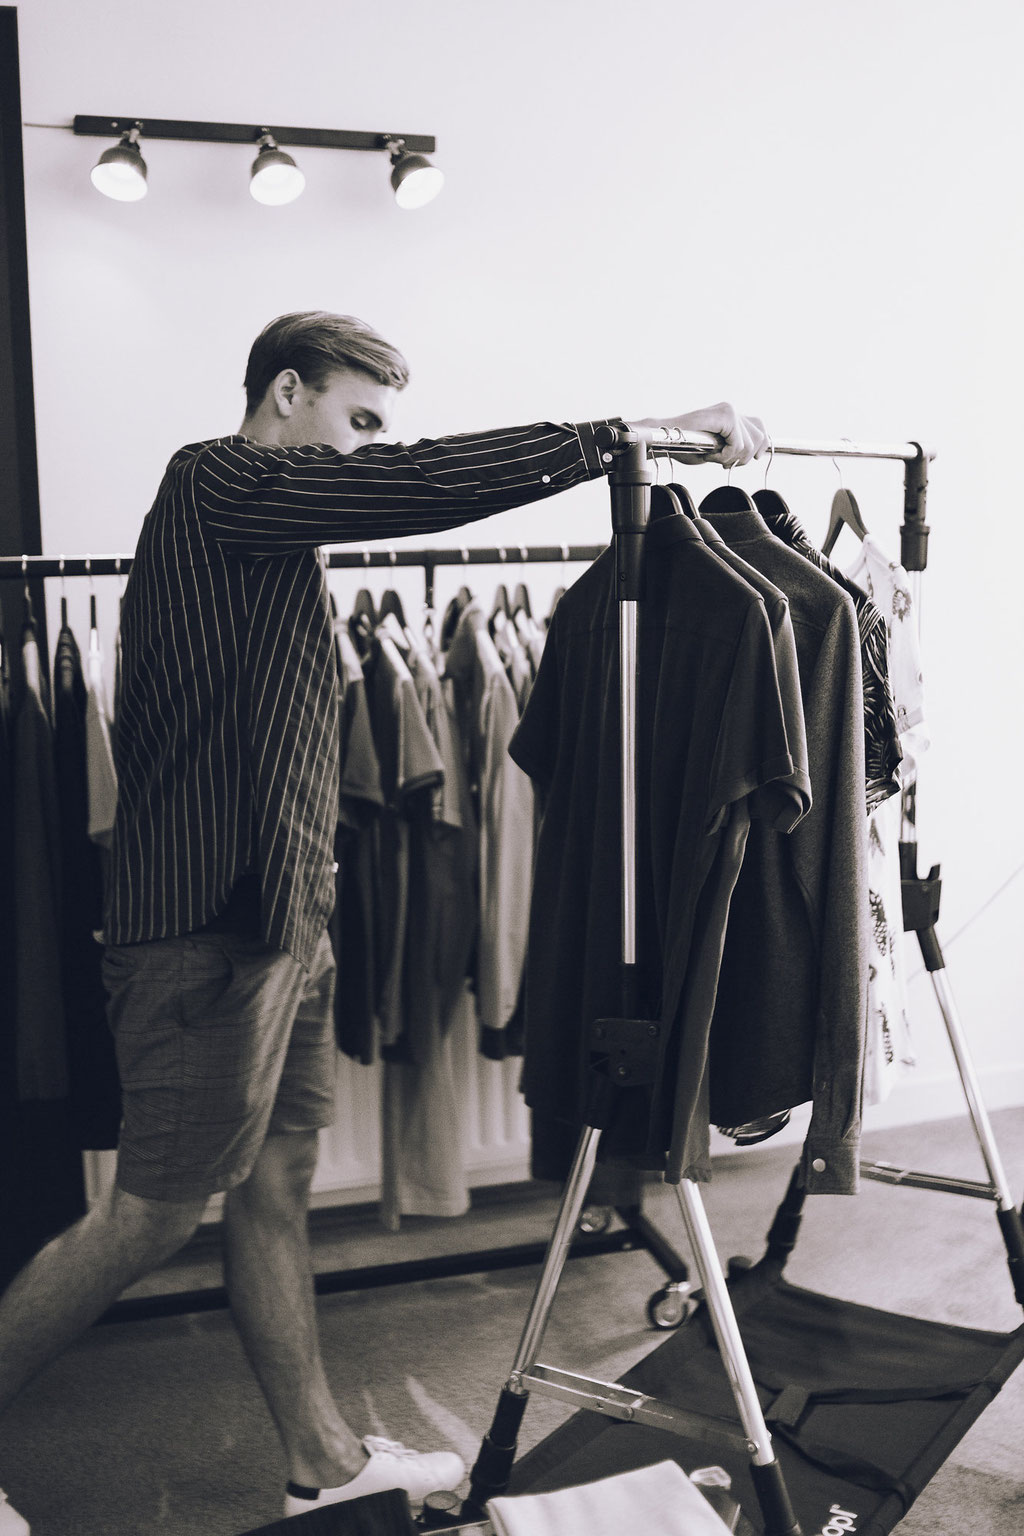 Thomas of Son of a Brand Agency - photographed by Landa Penders